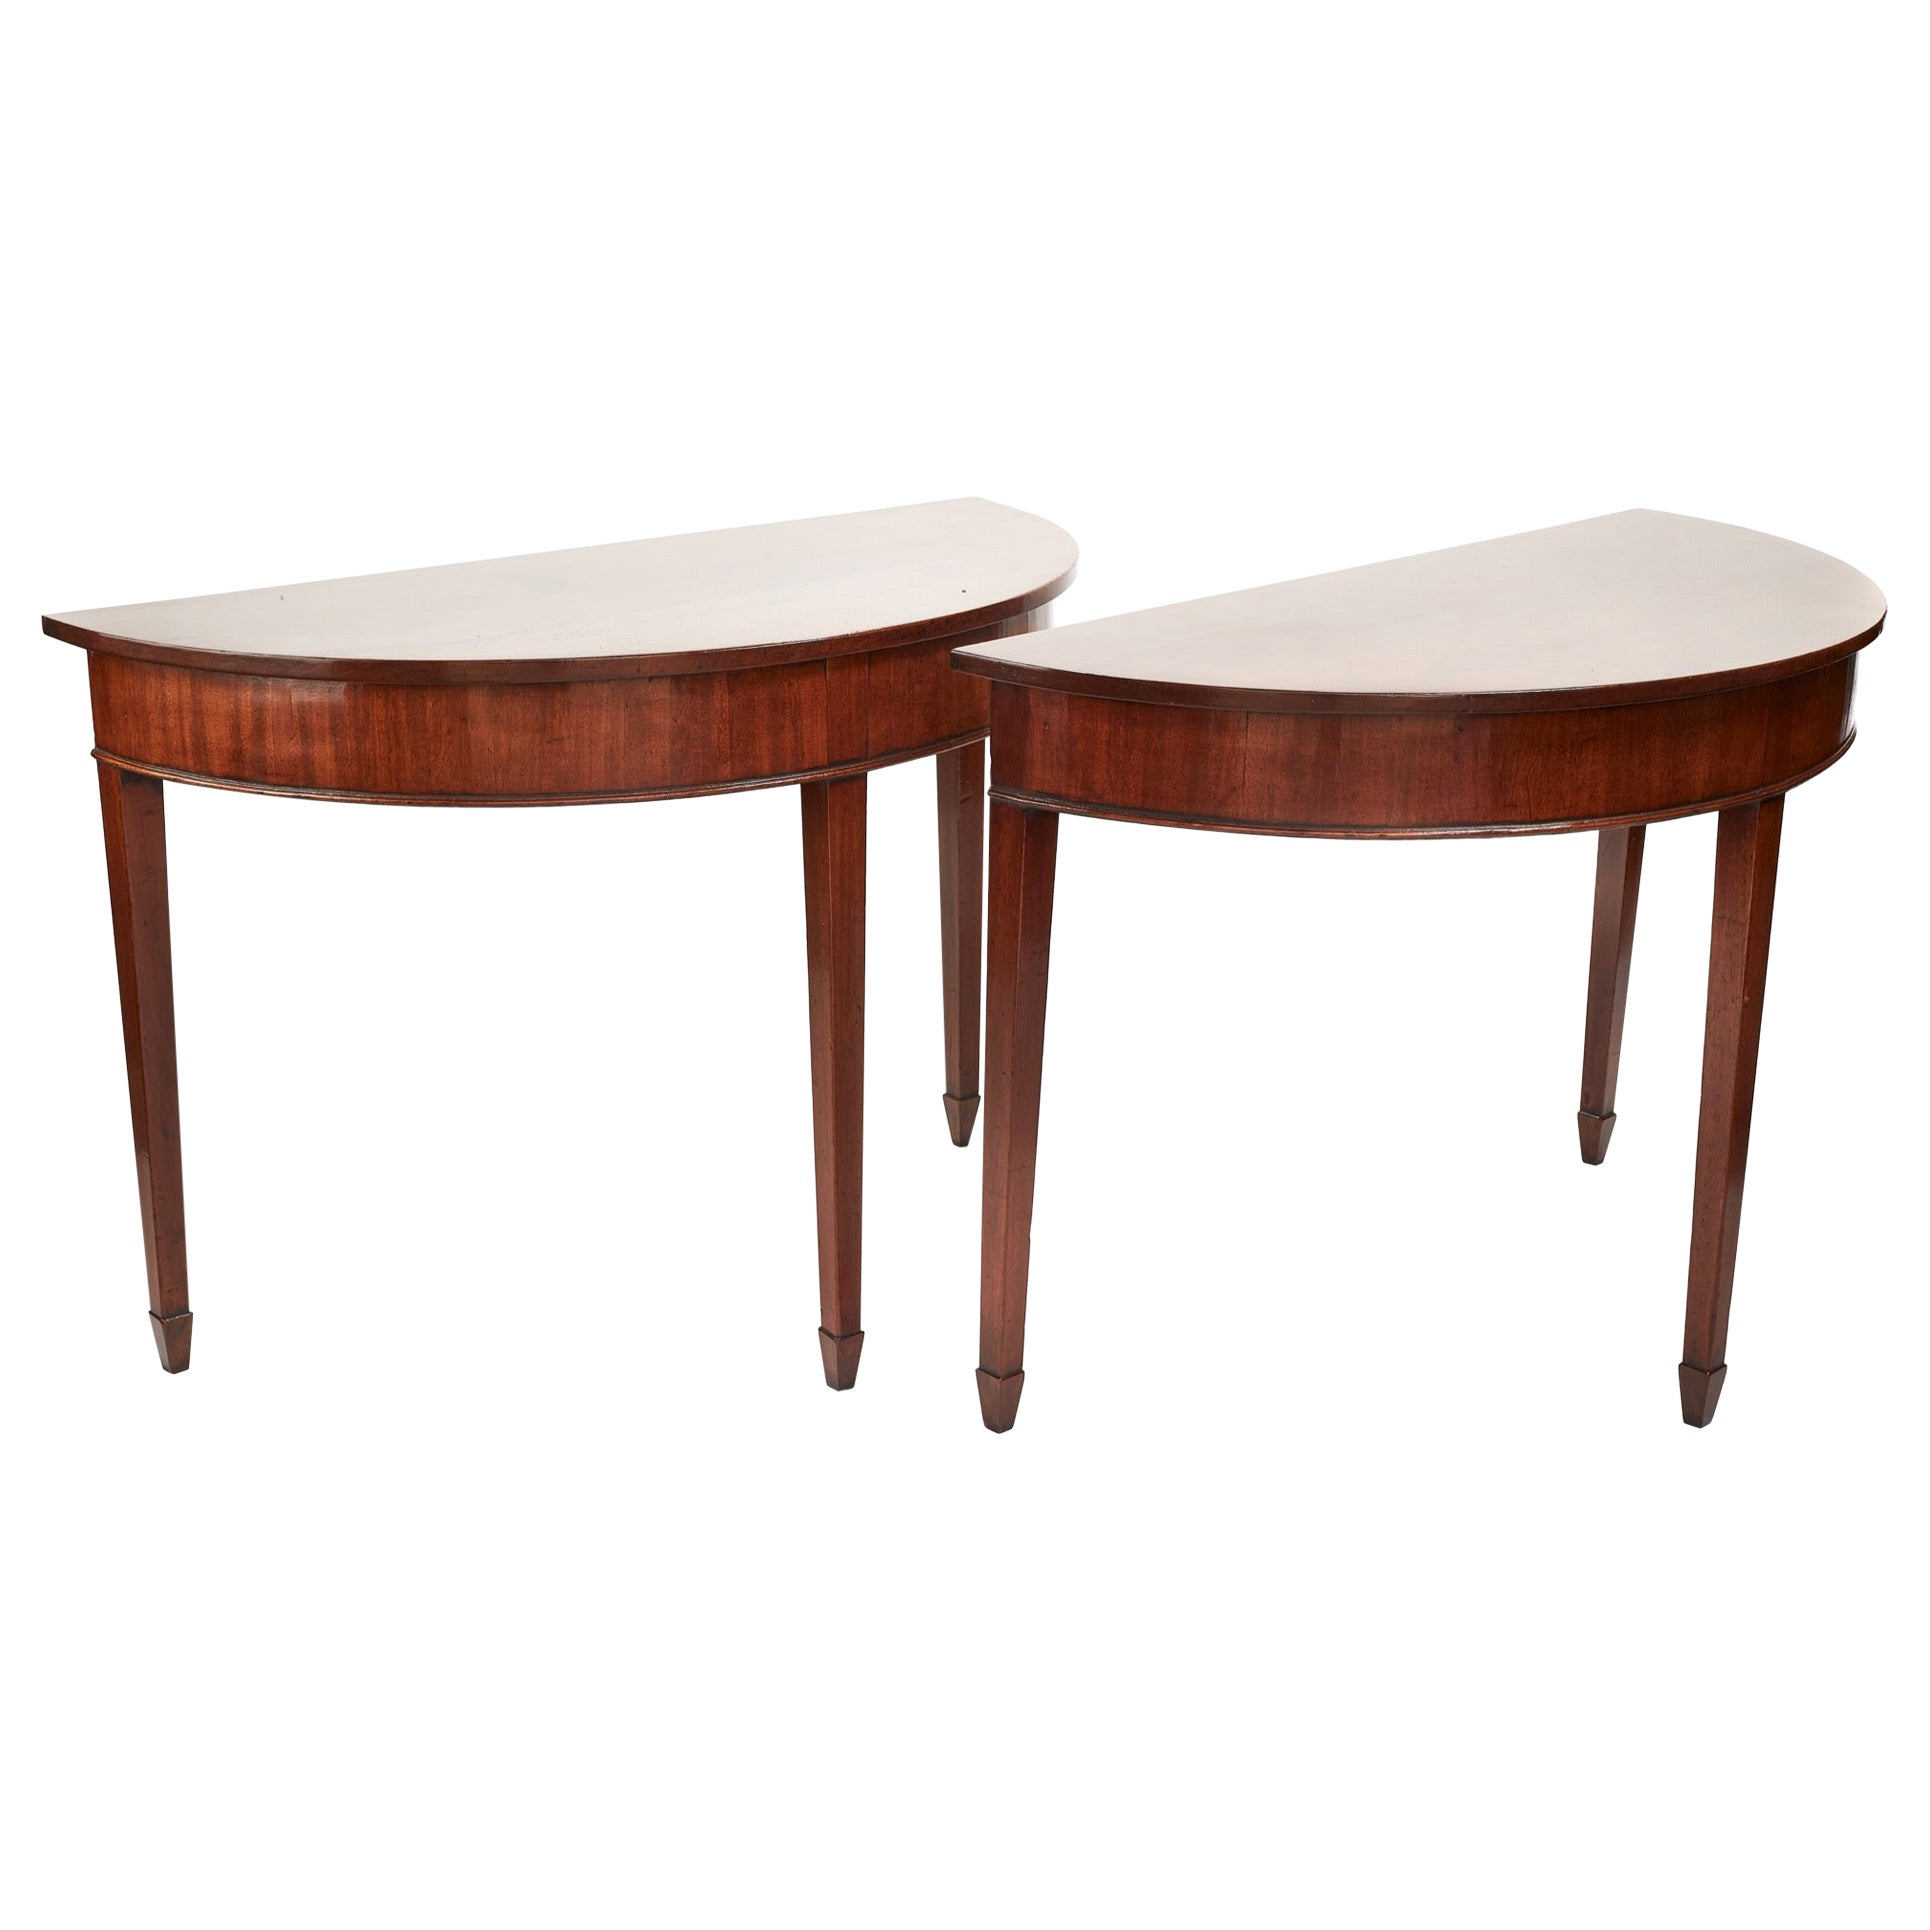 Antique Pair of George III Demilune Mahogany Console Tables